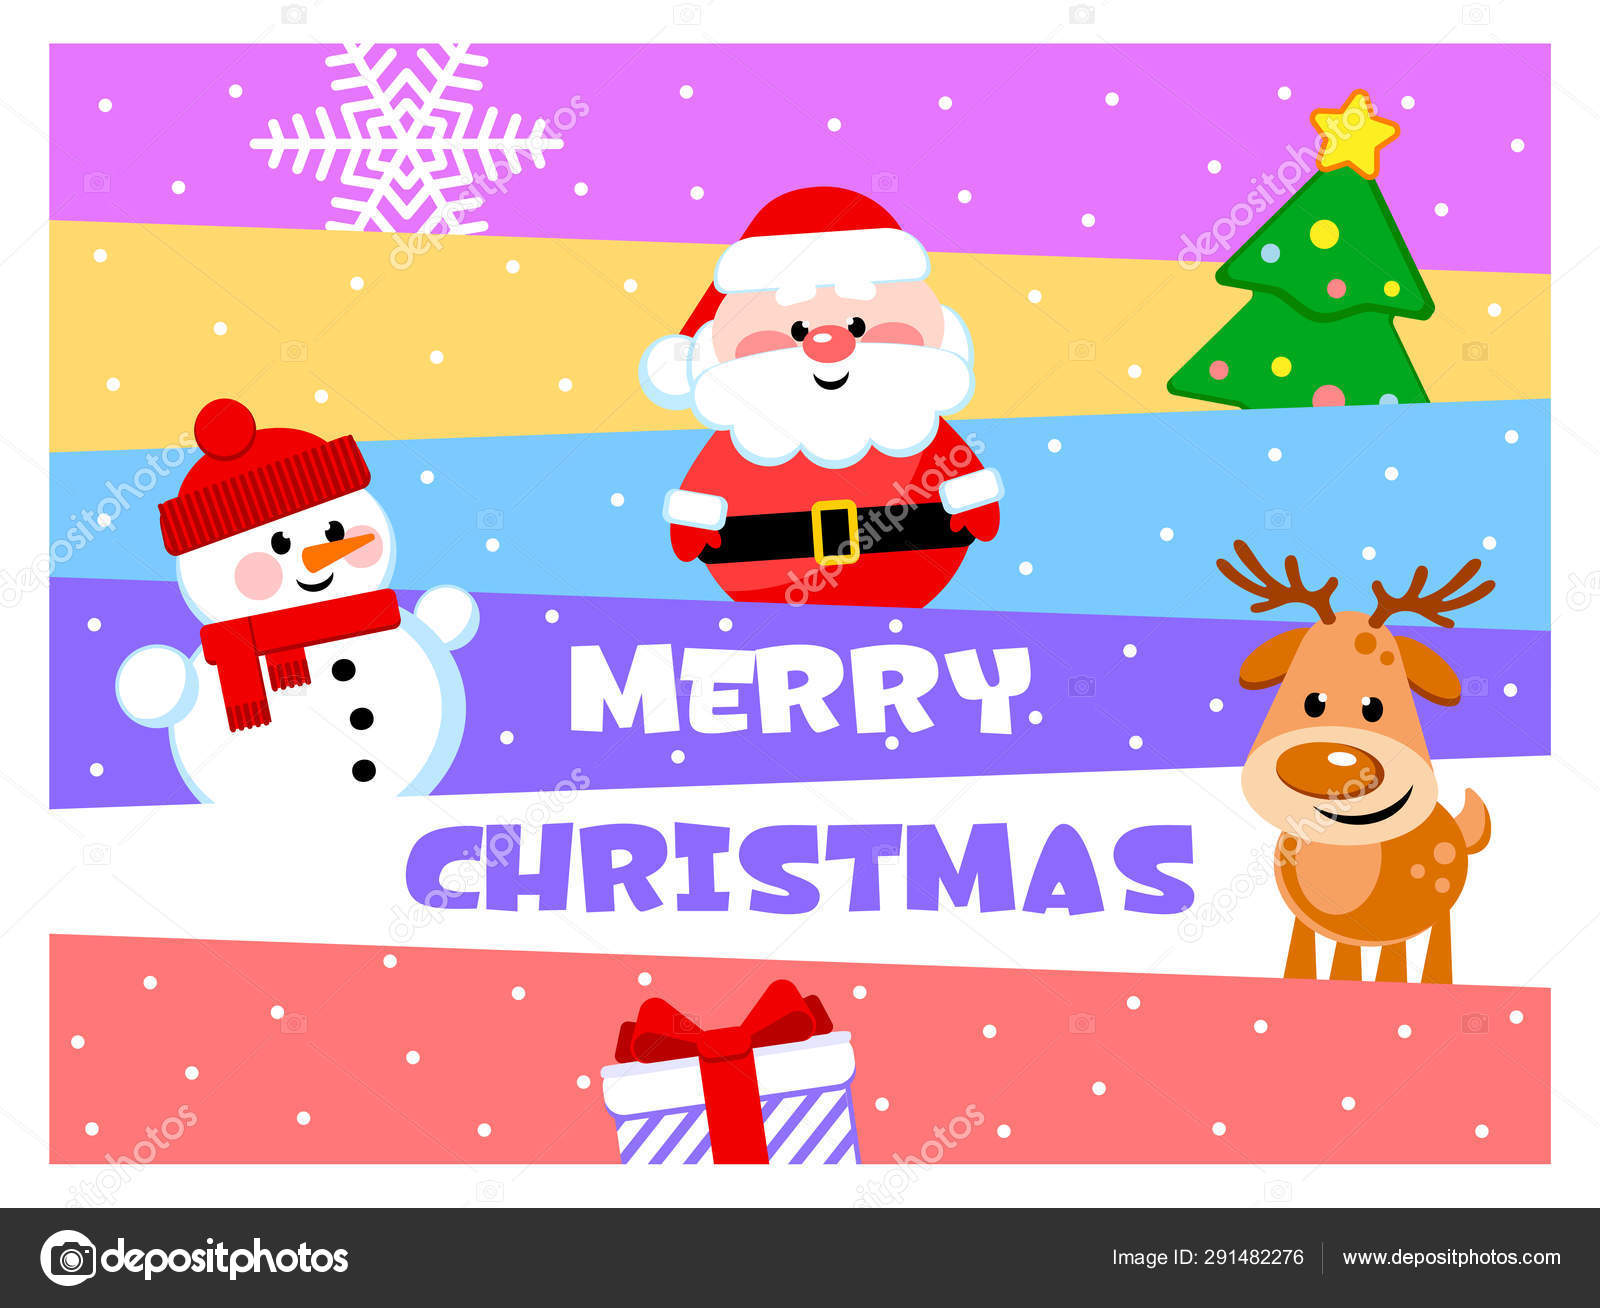 Merry Christmas Wishes Funny.Merry Christmas Greeting Card Funny Cartoon Characters Santa